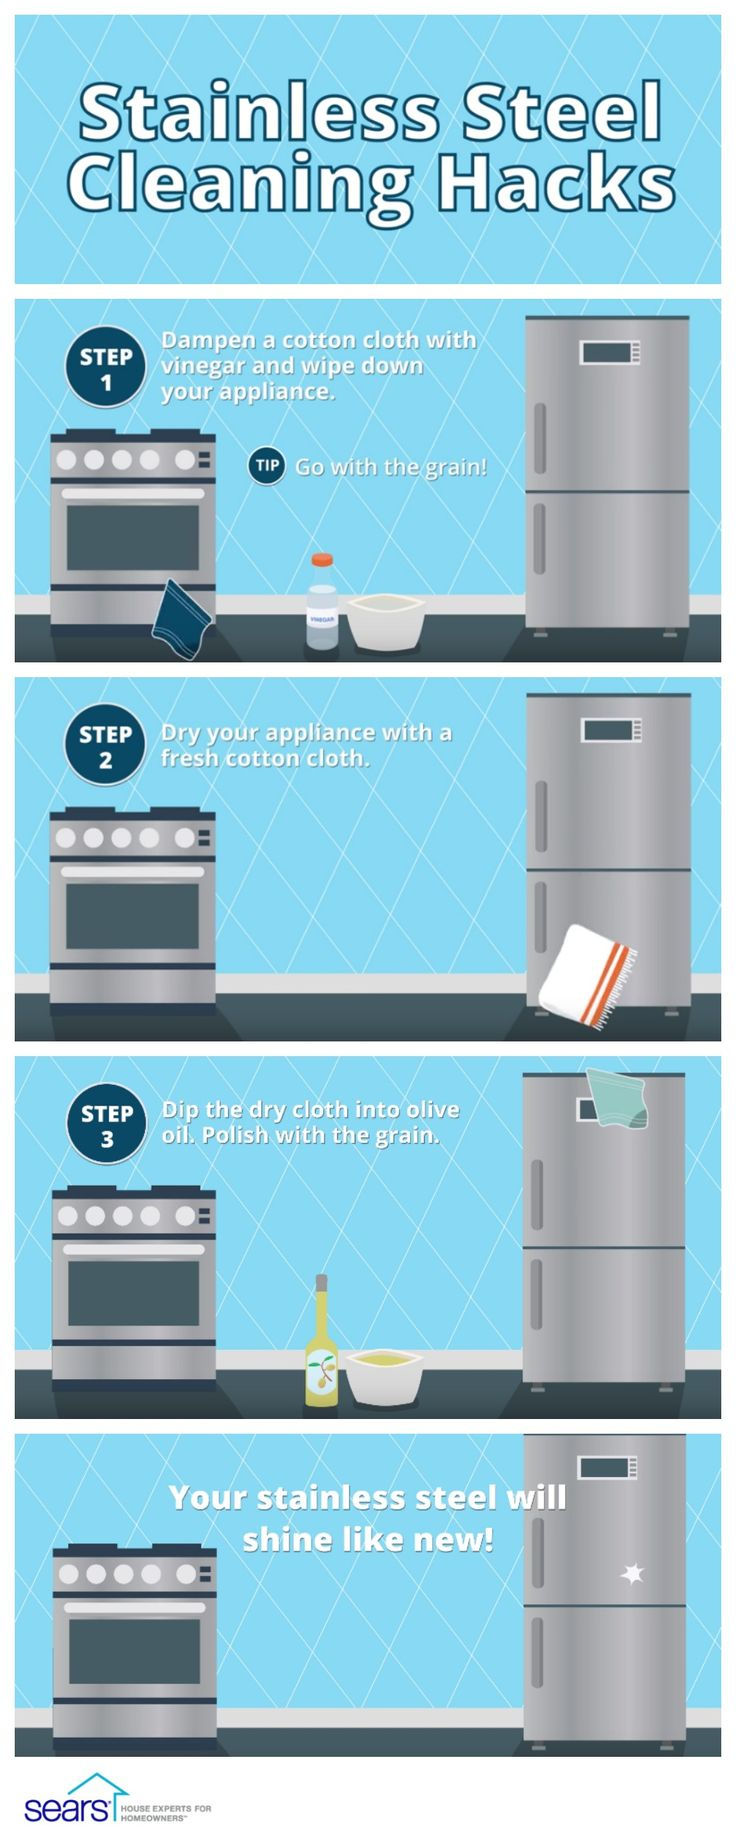 Dirty, dull appliances don't stand a chance against these stainless steel appliances cleaning hacks from Sears Home Services. Did you know that your stainless steel has a grain just like wood? If you polish against the grain, cleaning residue and dirt will be pushed farther into the grooves of the stainless steel, causing your appliance to look even dirtier. Check out these cleaning hacks to make sure that your stainless steel appliances shine like new.